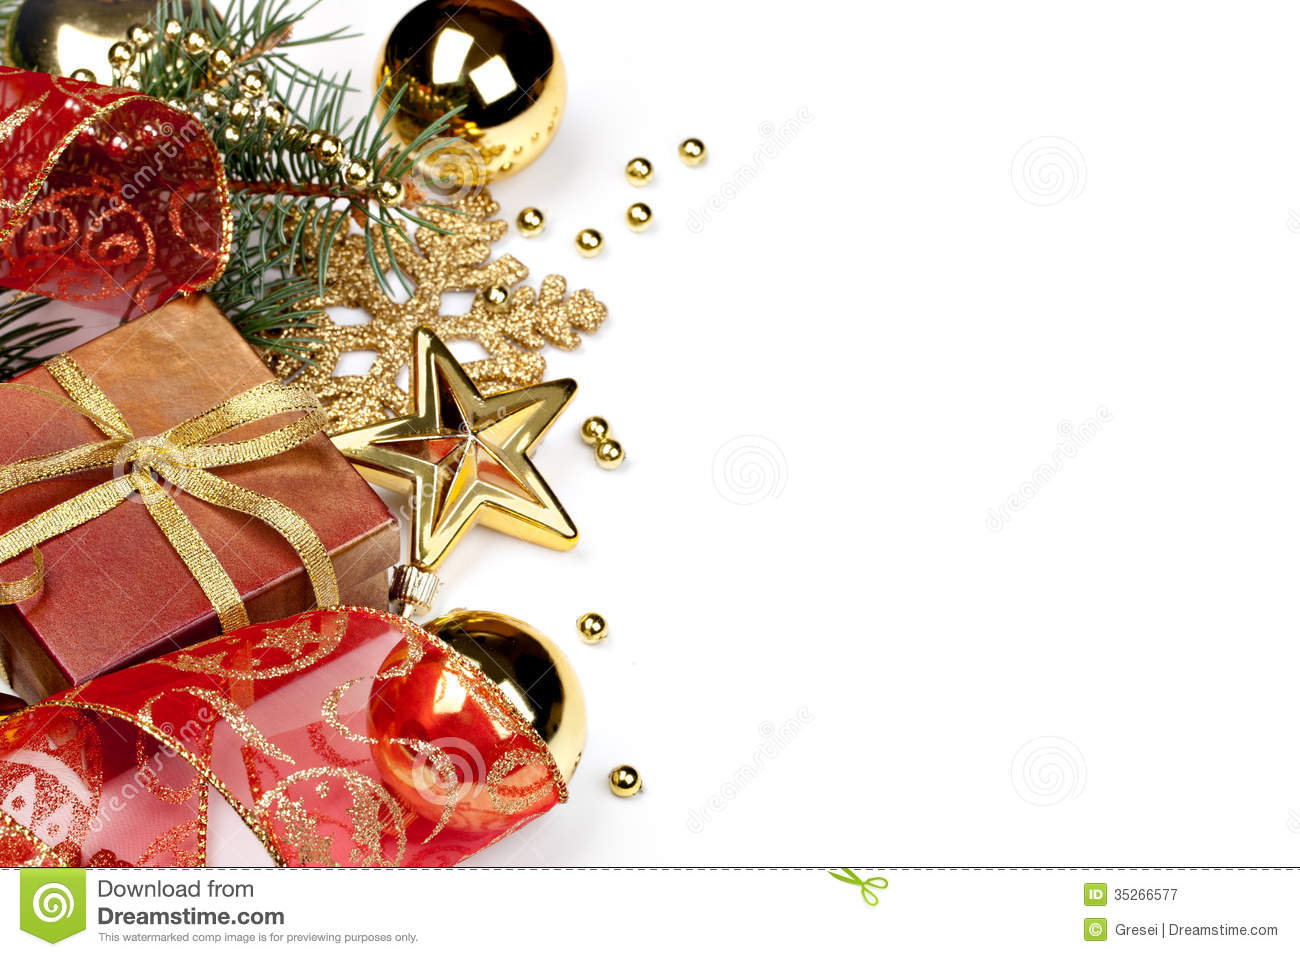 Christmas decoration royalty free stock photography image 35266577 for Decoration image